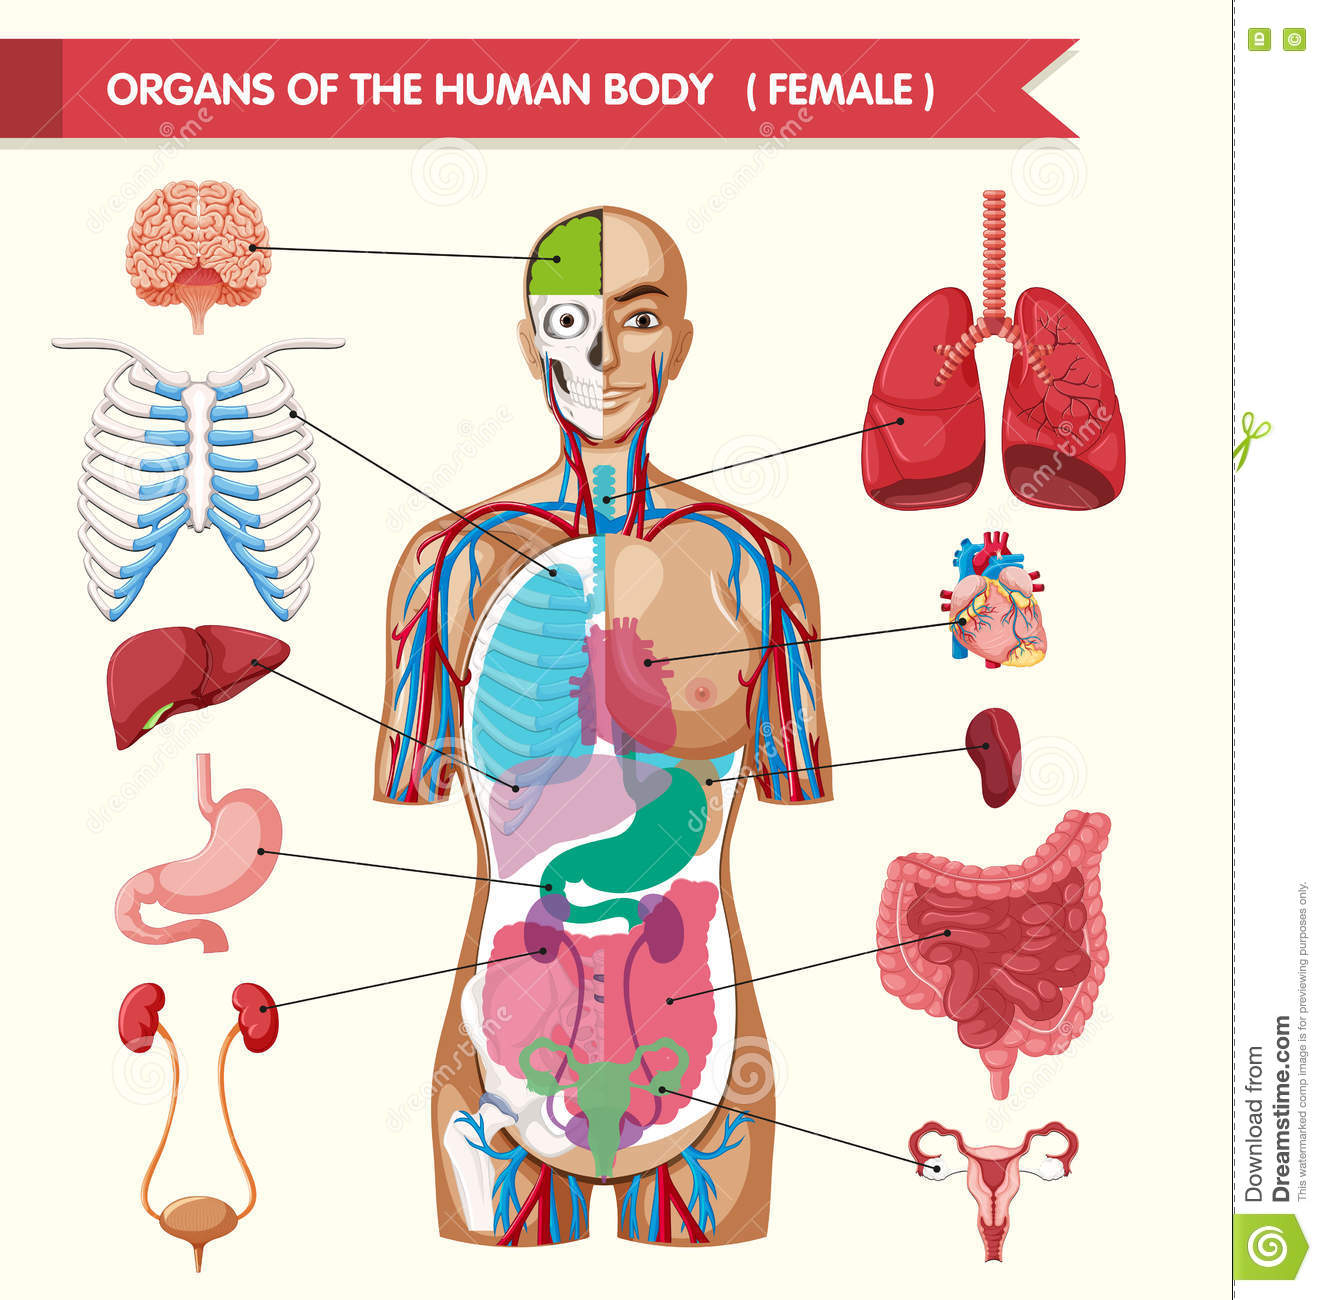 hight resolution of organs of the human body diagram